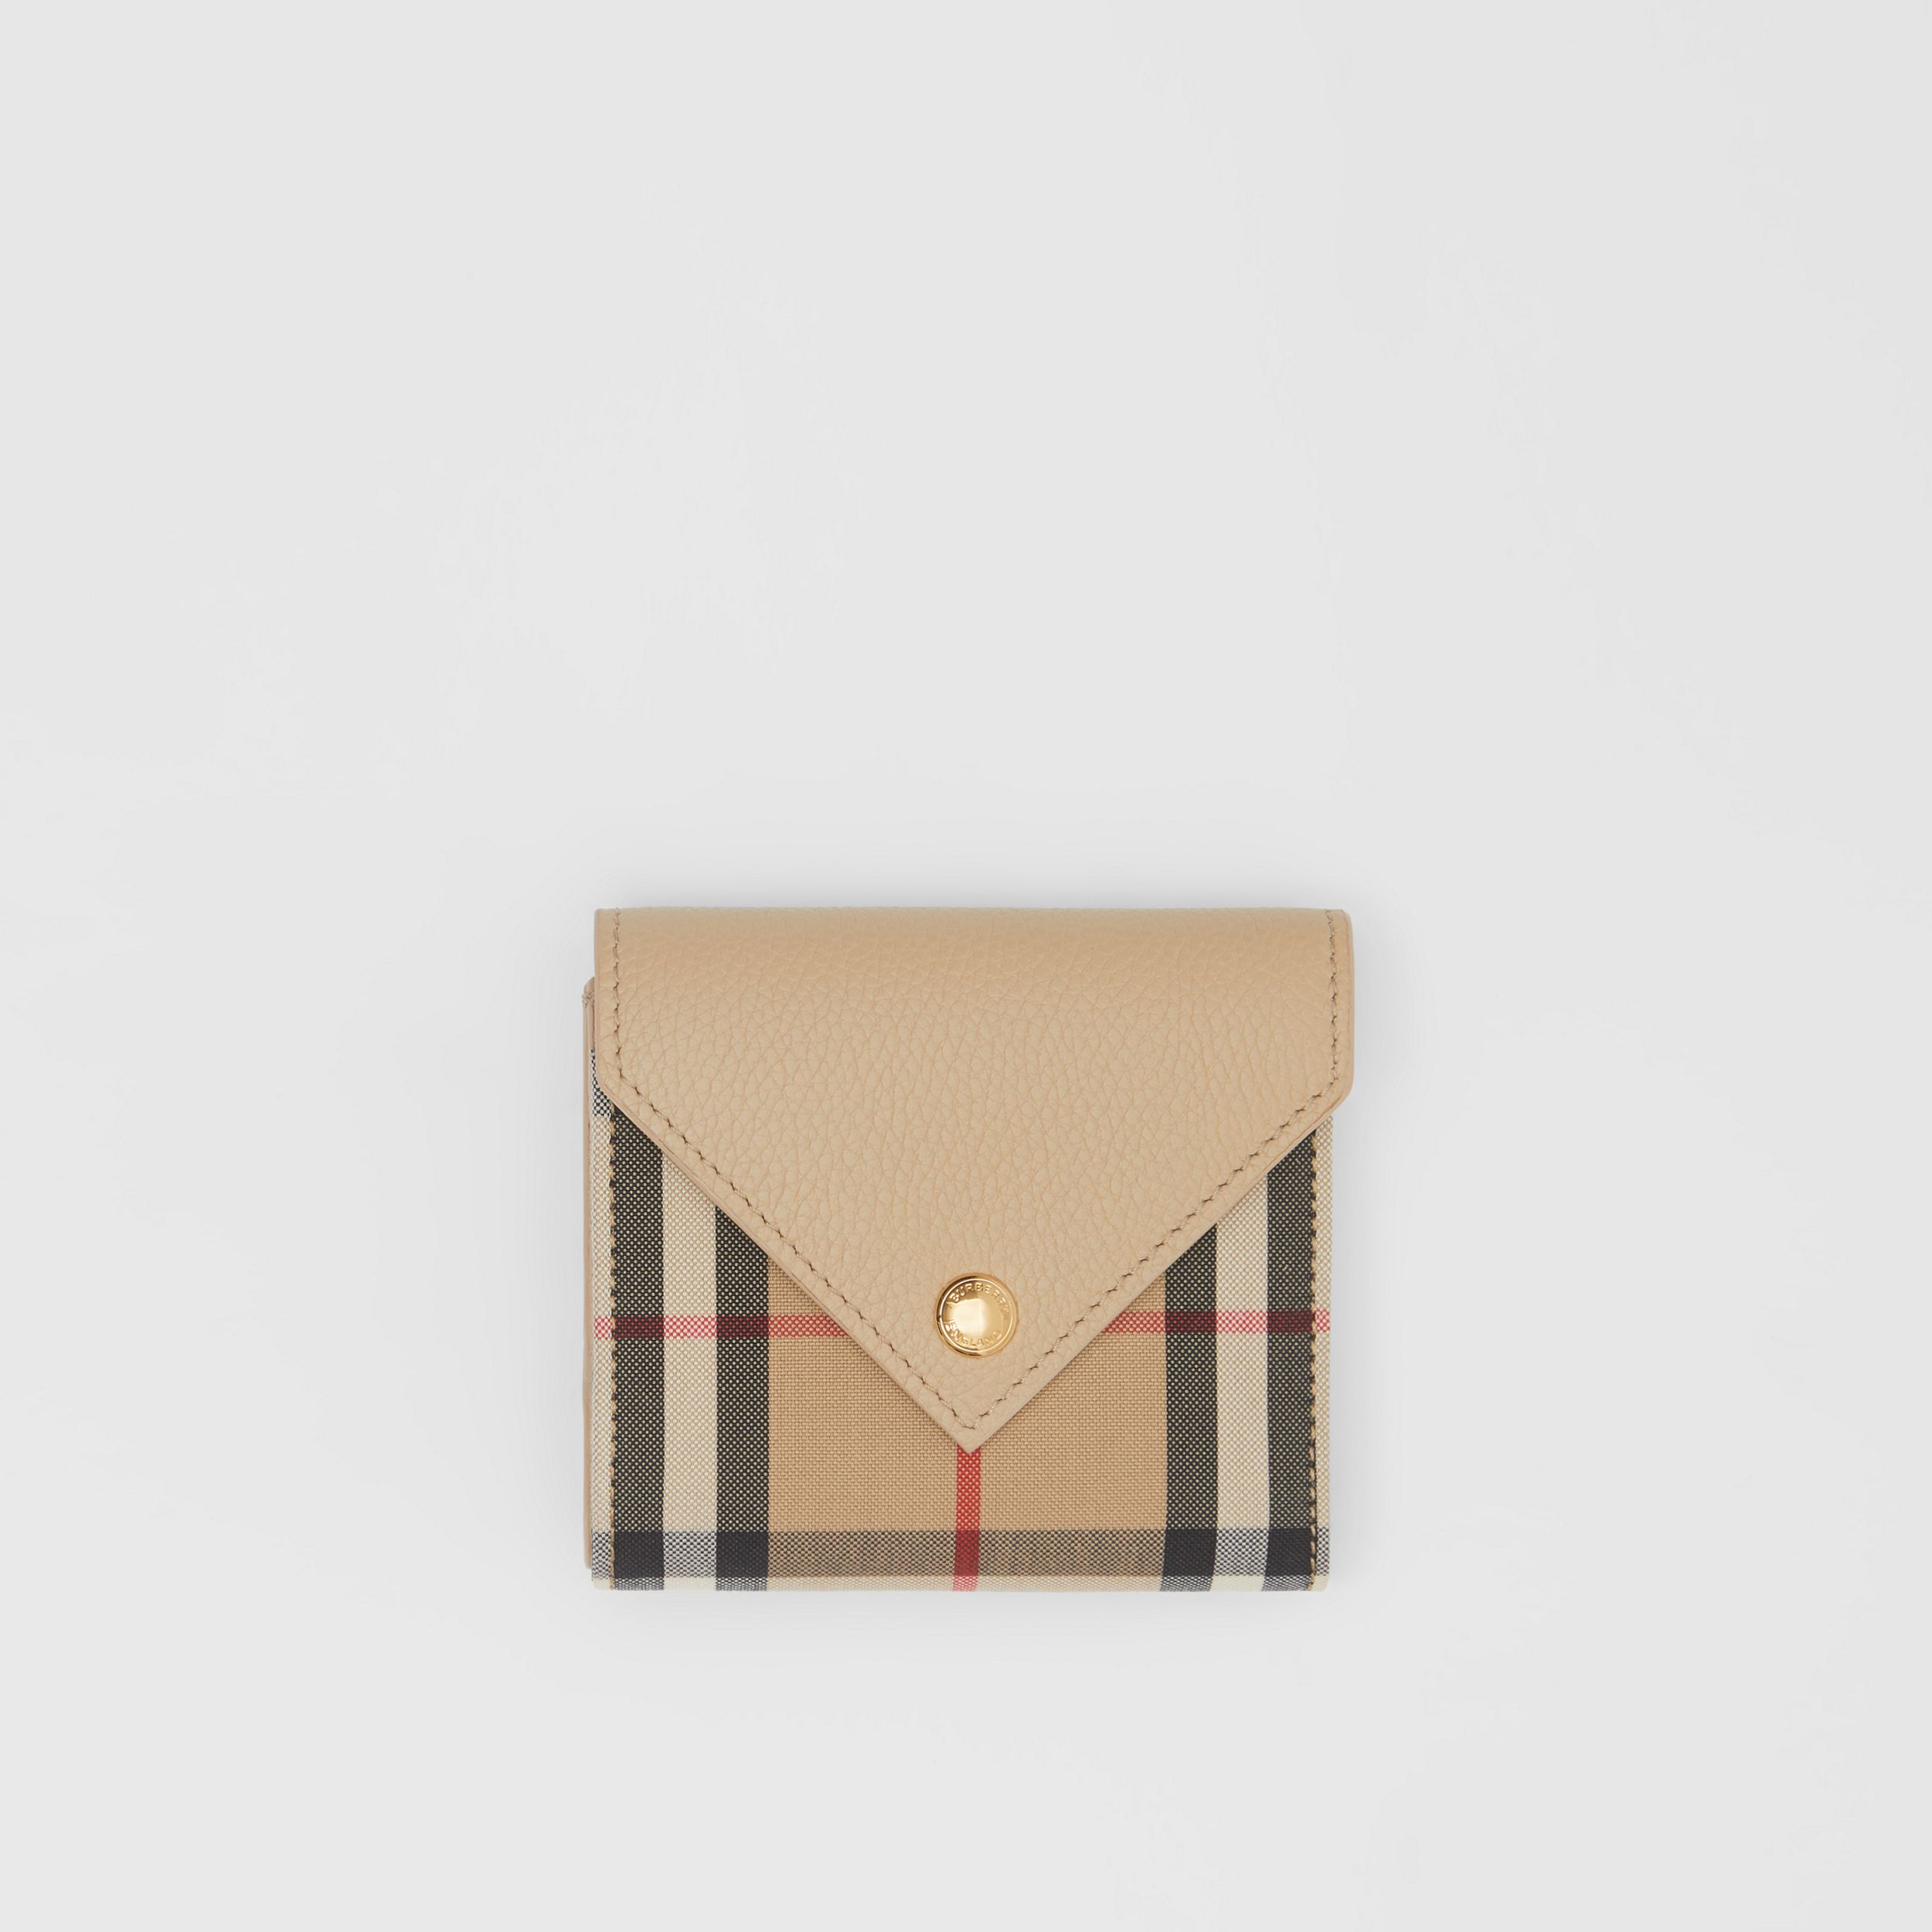 Vintage Check and Grainy Leather Folding Wallet in Light Beige - Women | Burberry Canada - 1